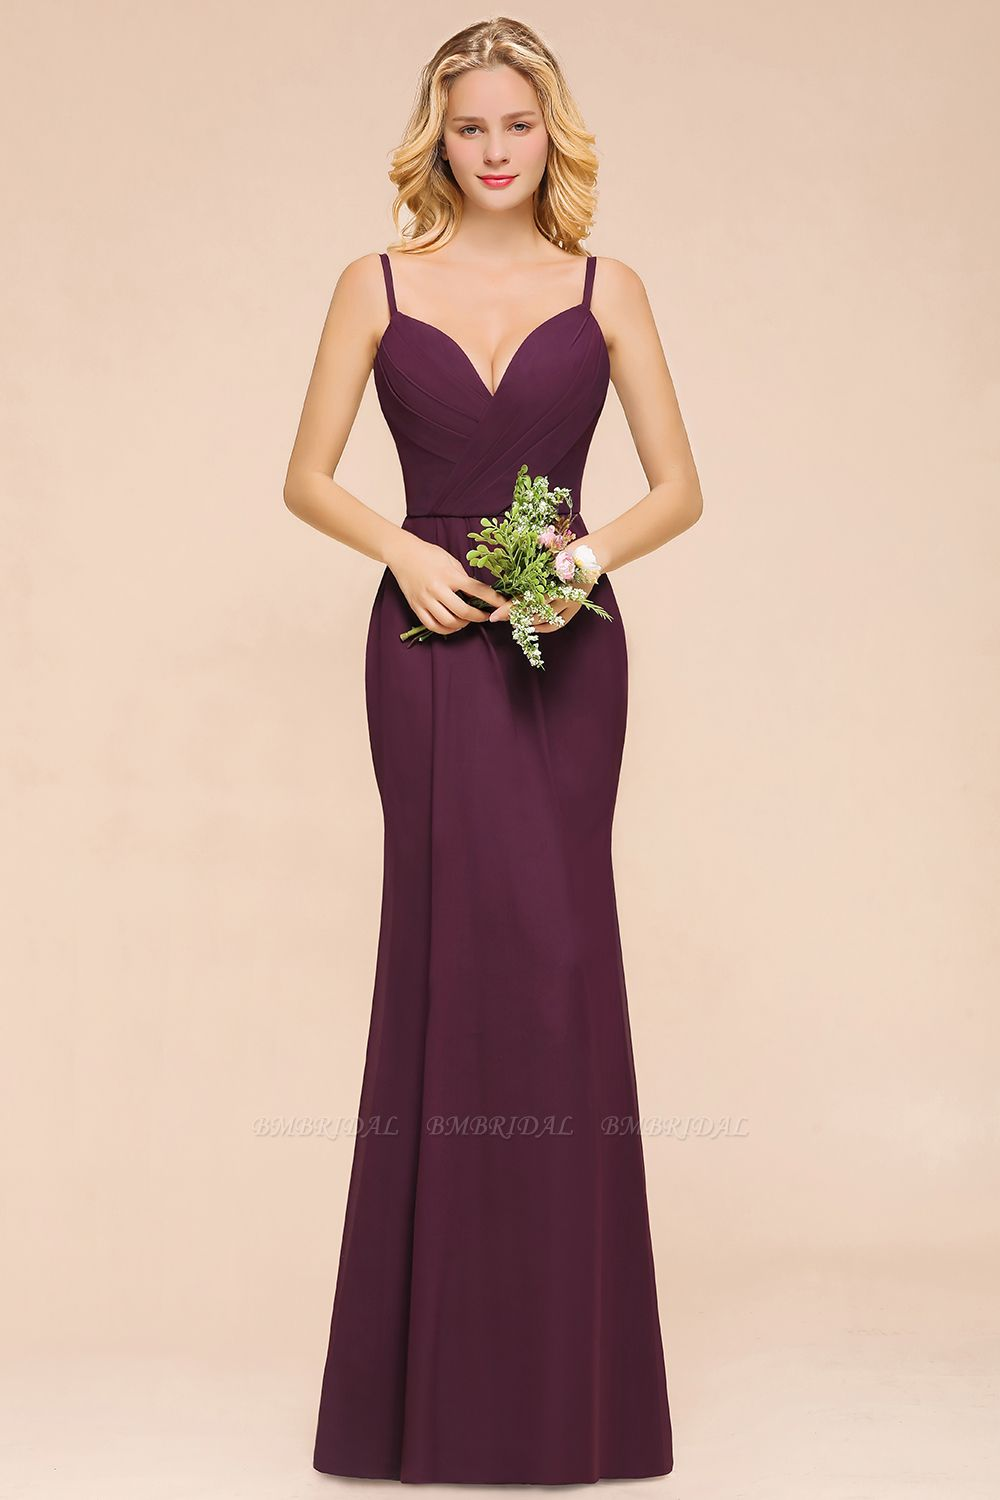 Fantastic Spaghetti Straps V-Neck Grape Bridesmaid Dress with Ruffle